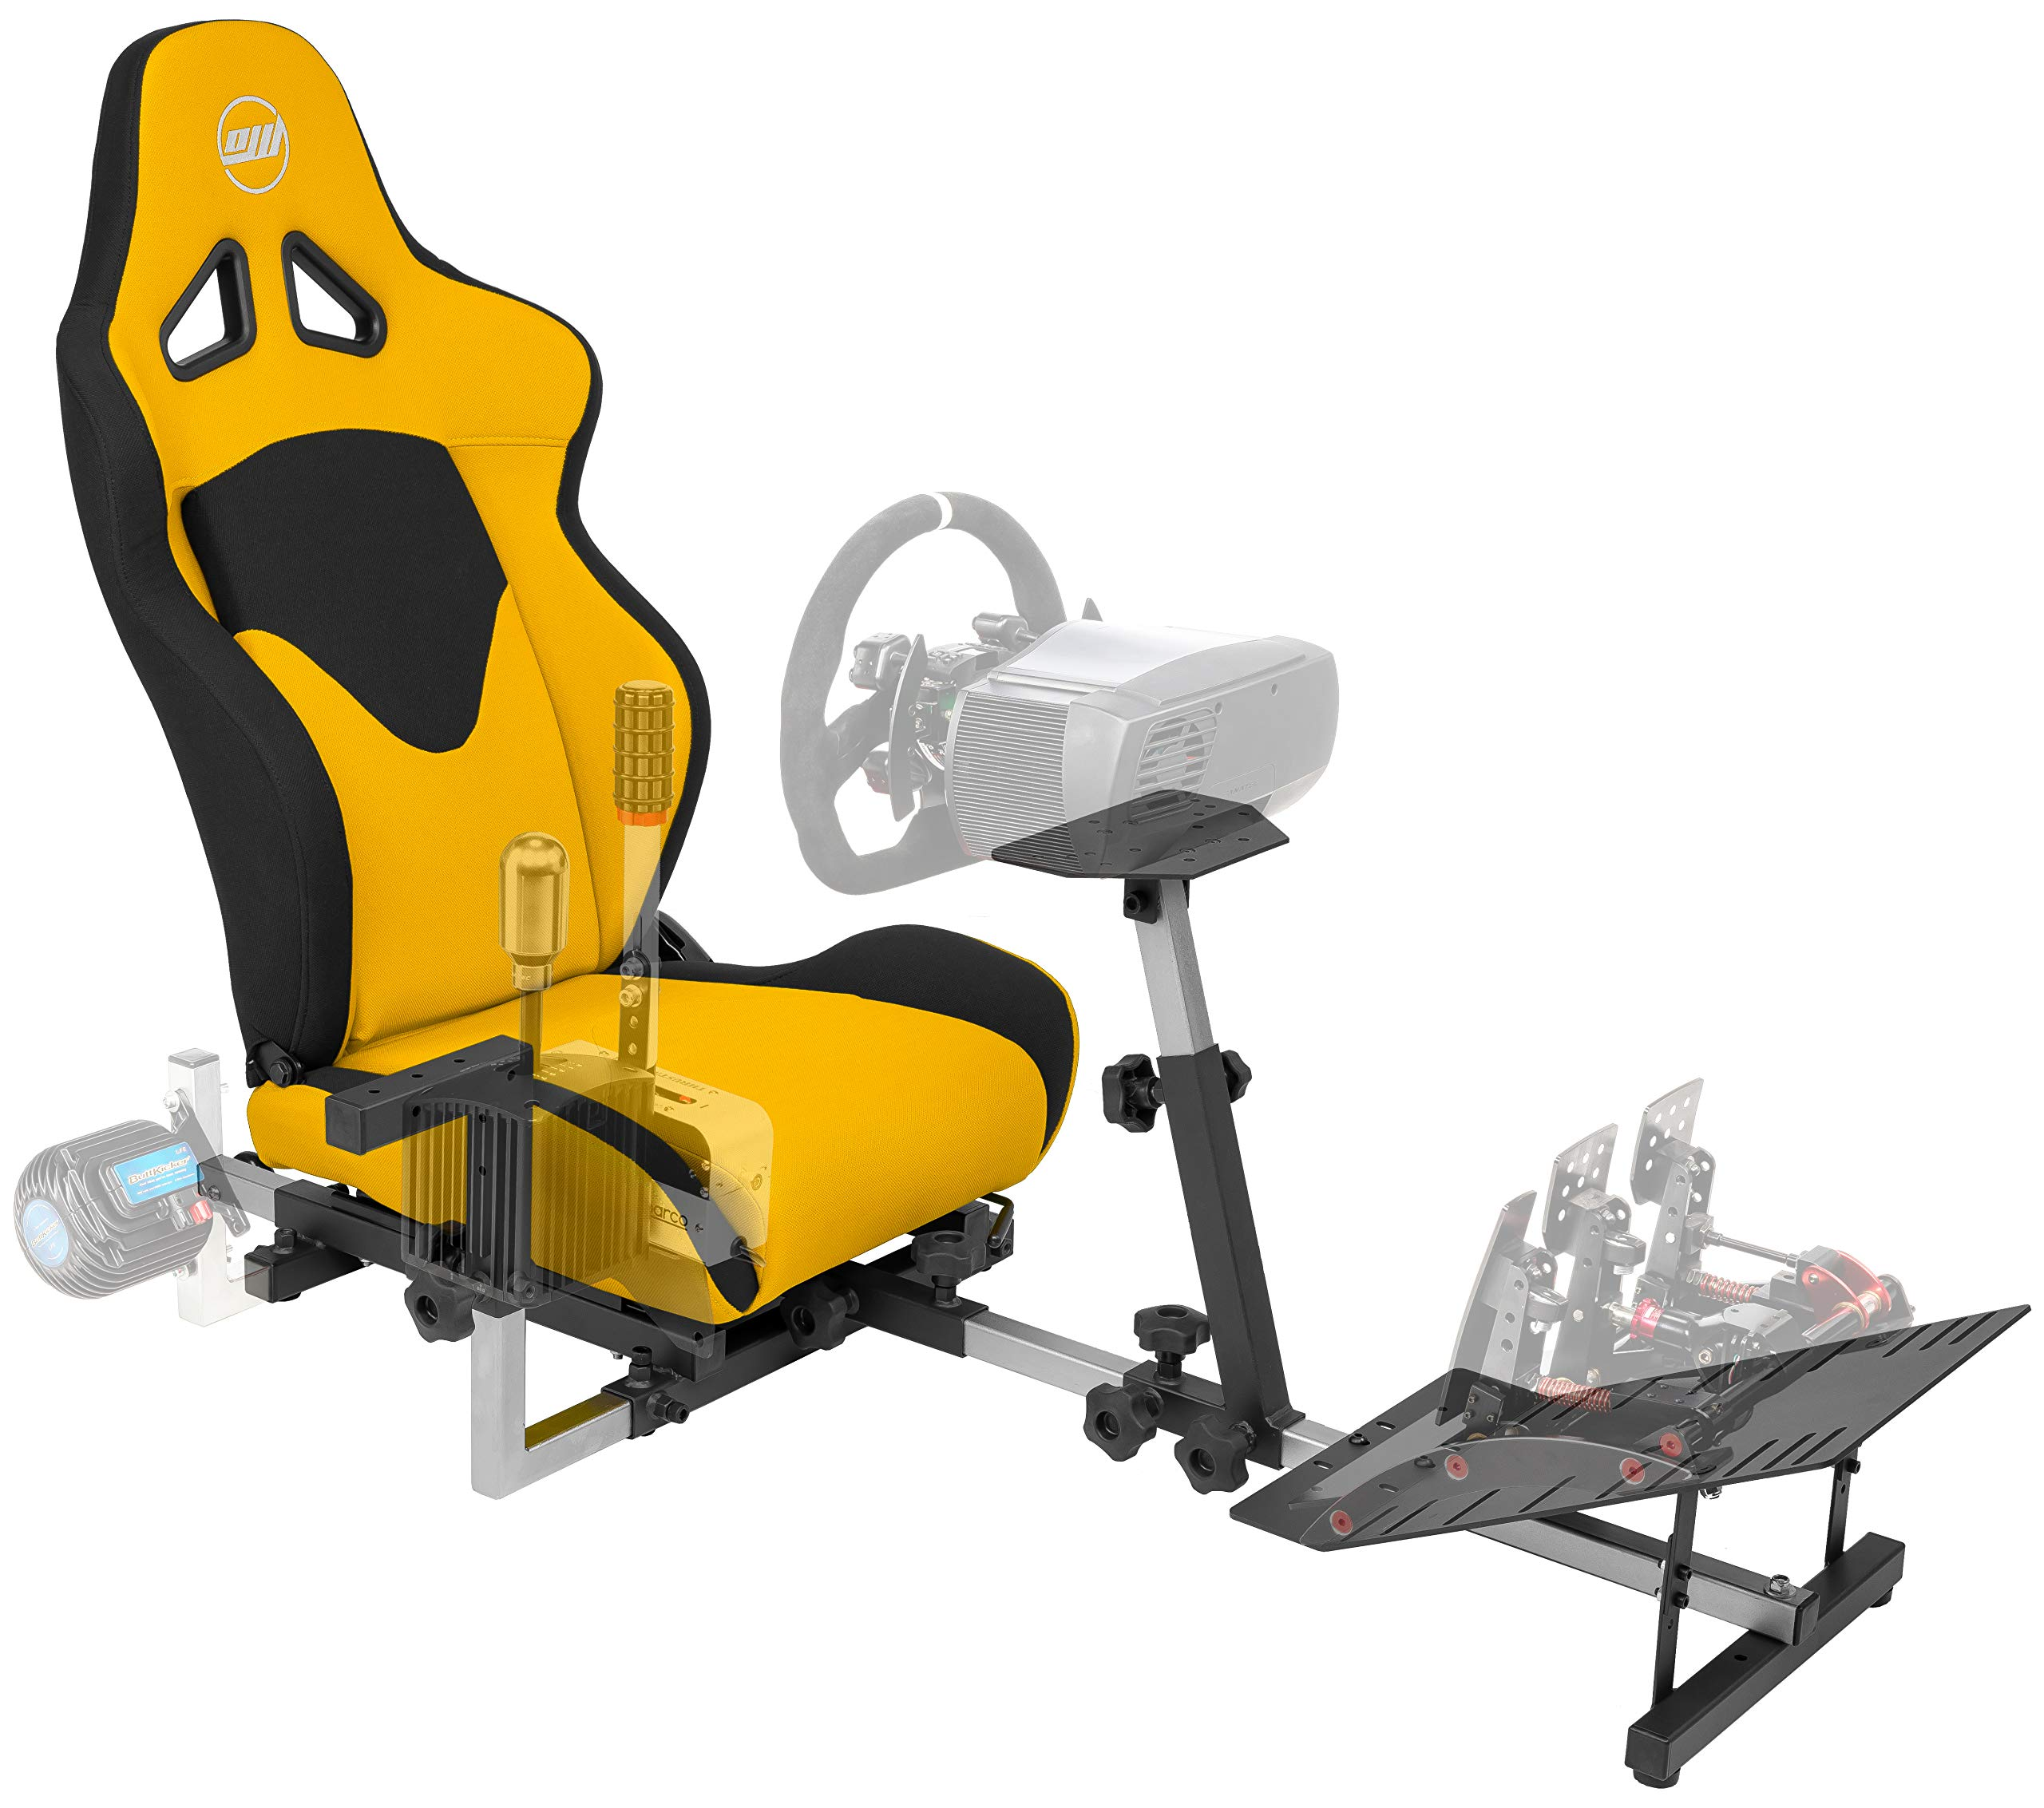 OpenWheeler GEN3 Racing Wheel Stand Cockpit Yellow on Black | Fits All Logitech G923 | G29 | G920 | Thrustmaster | Fanatec Wheels | Compatible with Xbox One, PS4, PC Platforms